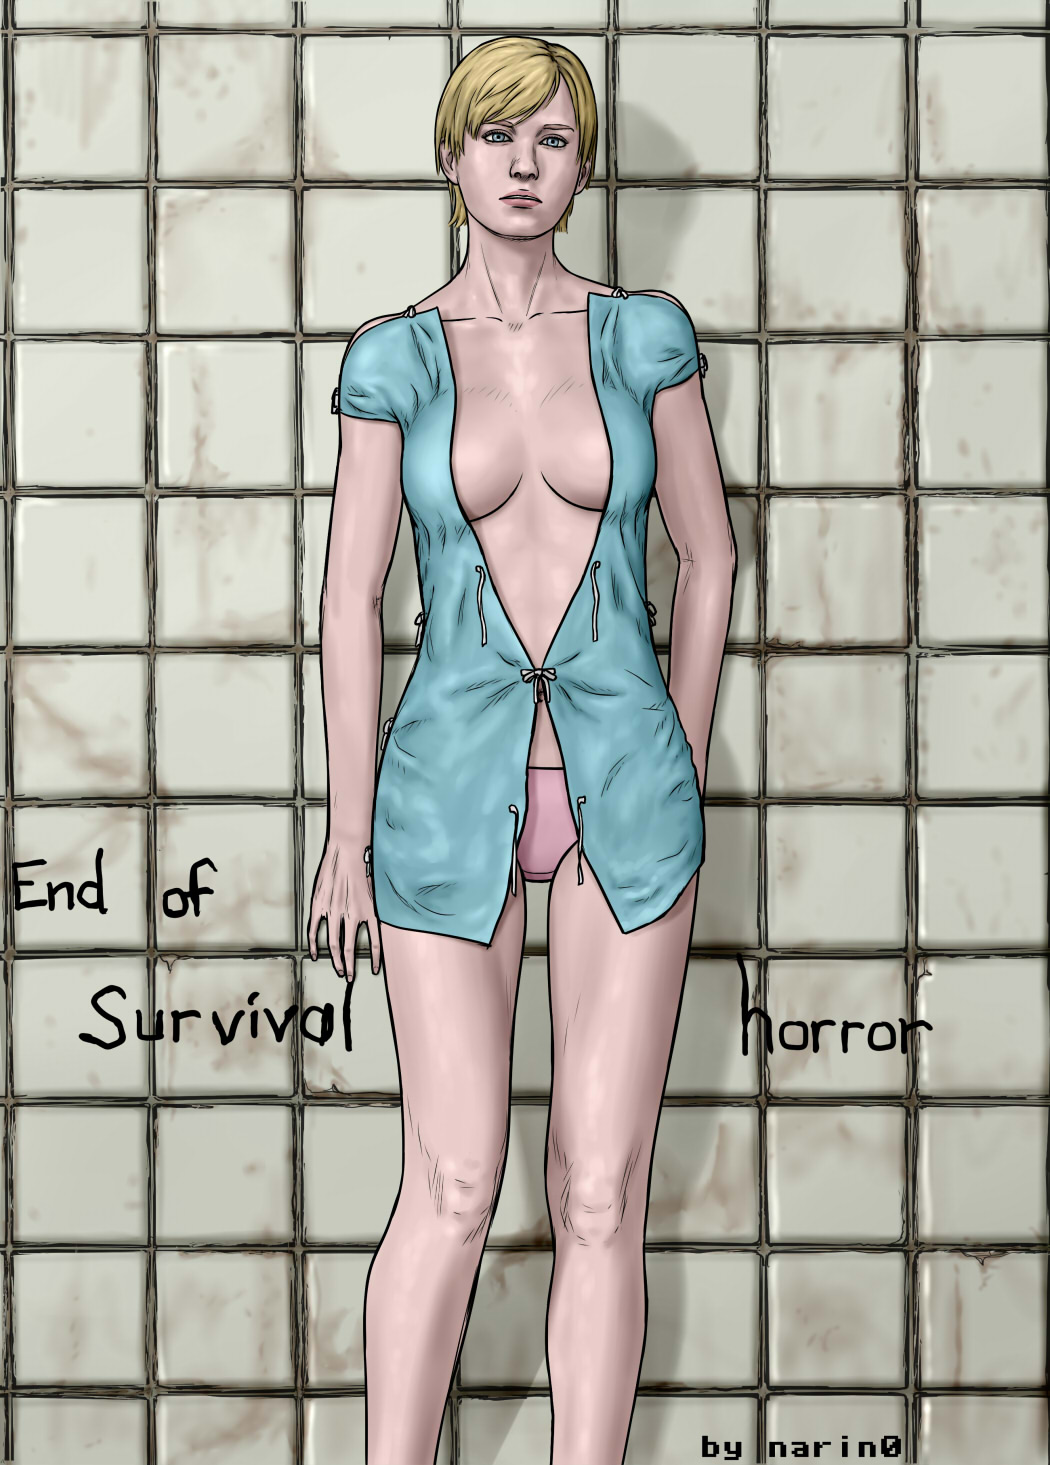 Goodcomix.tk Resident Evil - [Narin0] - End of Survival Horror Ch. 1-2